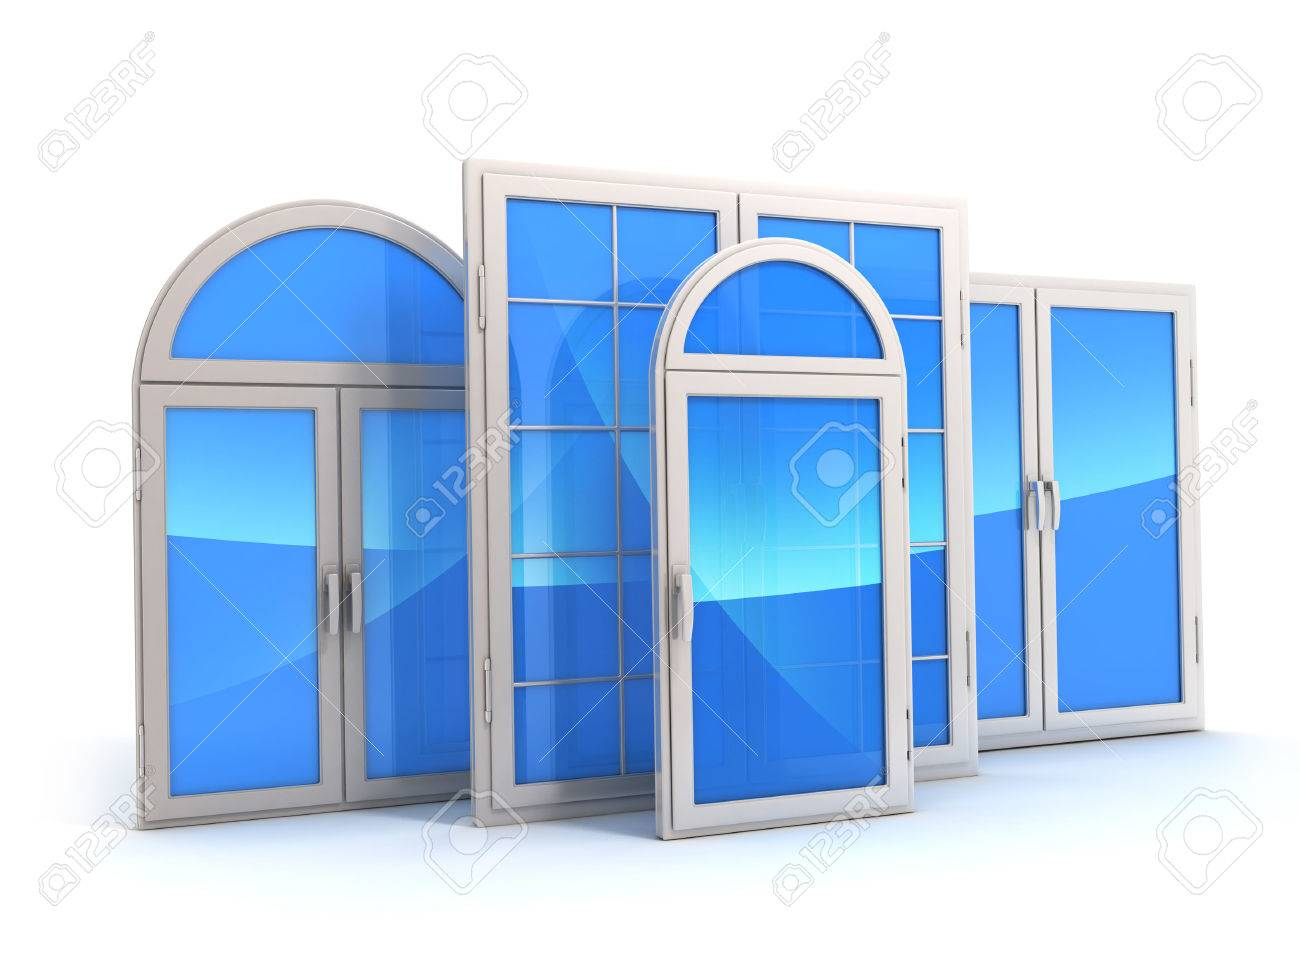 window with reflections of the sky (done in 3d) - 30686863